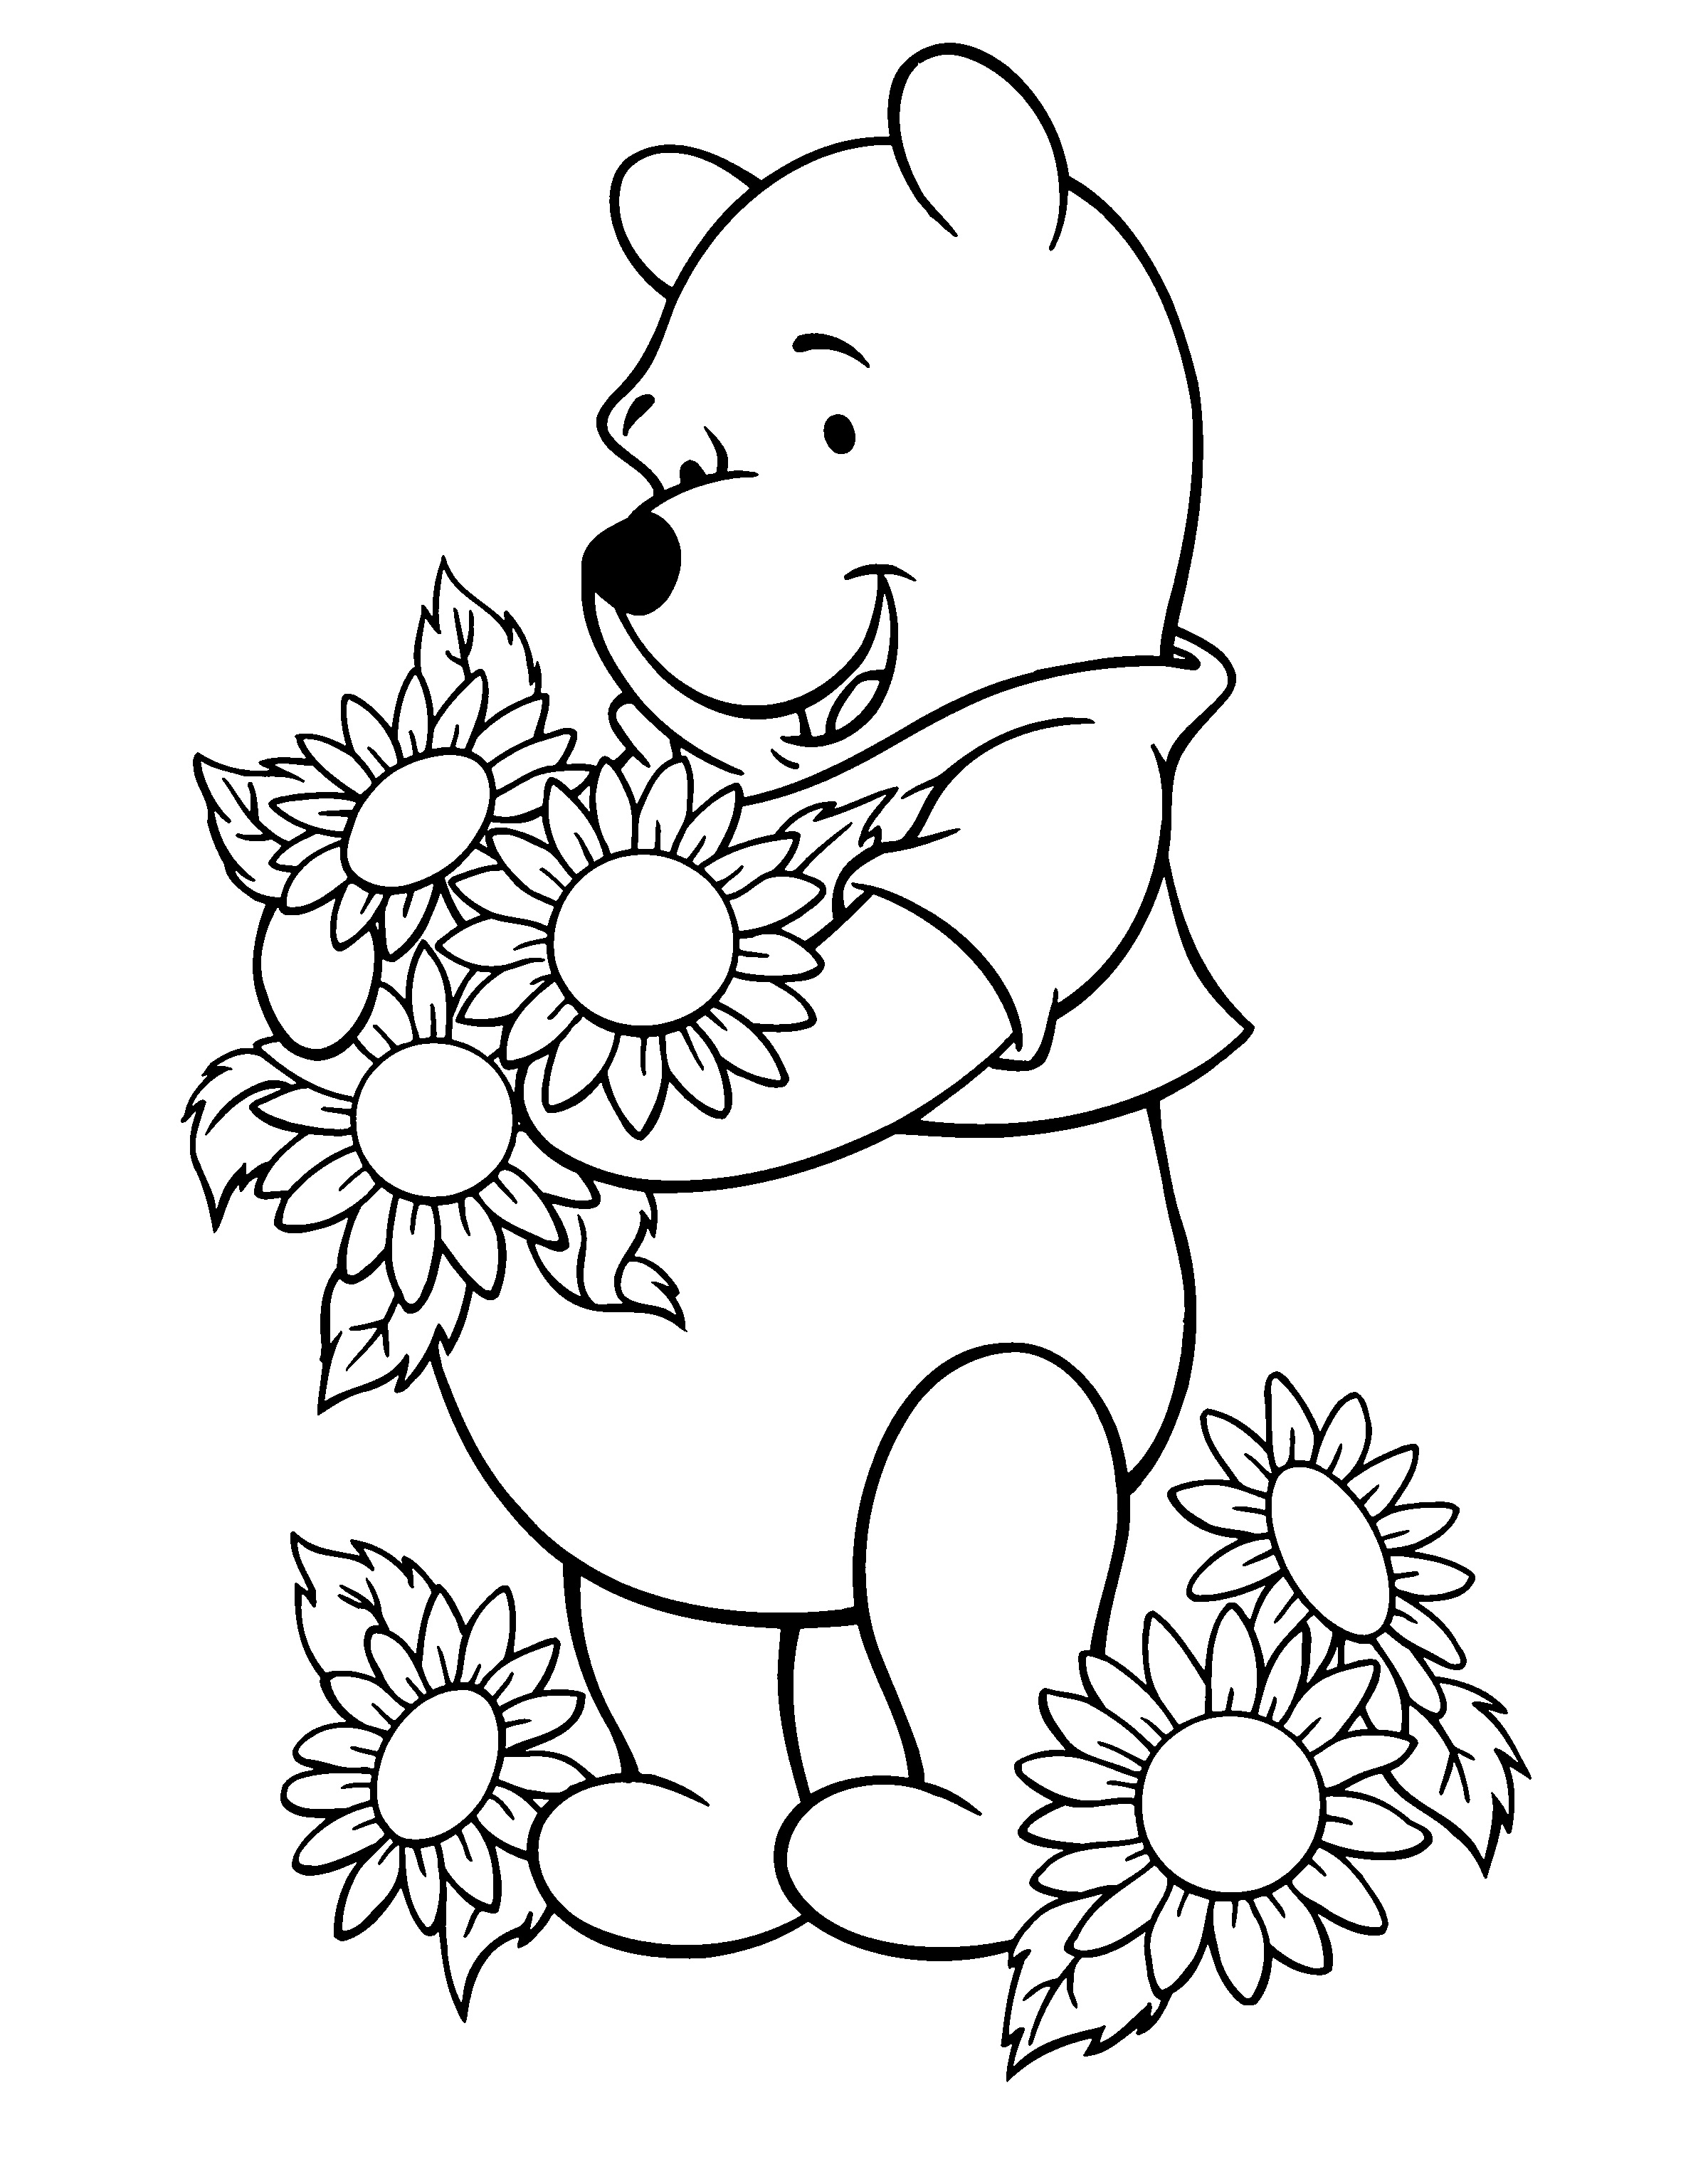 sunflower coloring sunflower coloring pages to download and print for free sunflower coloring